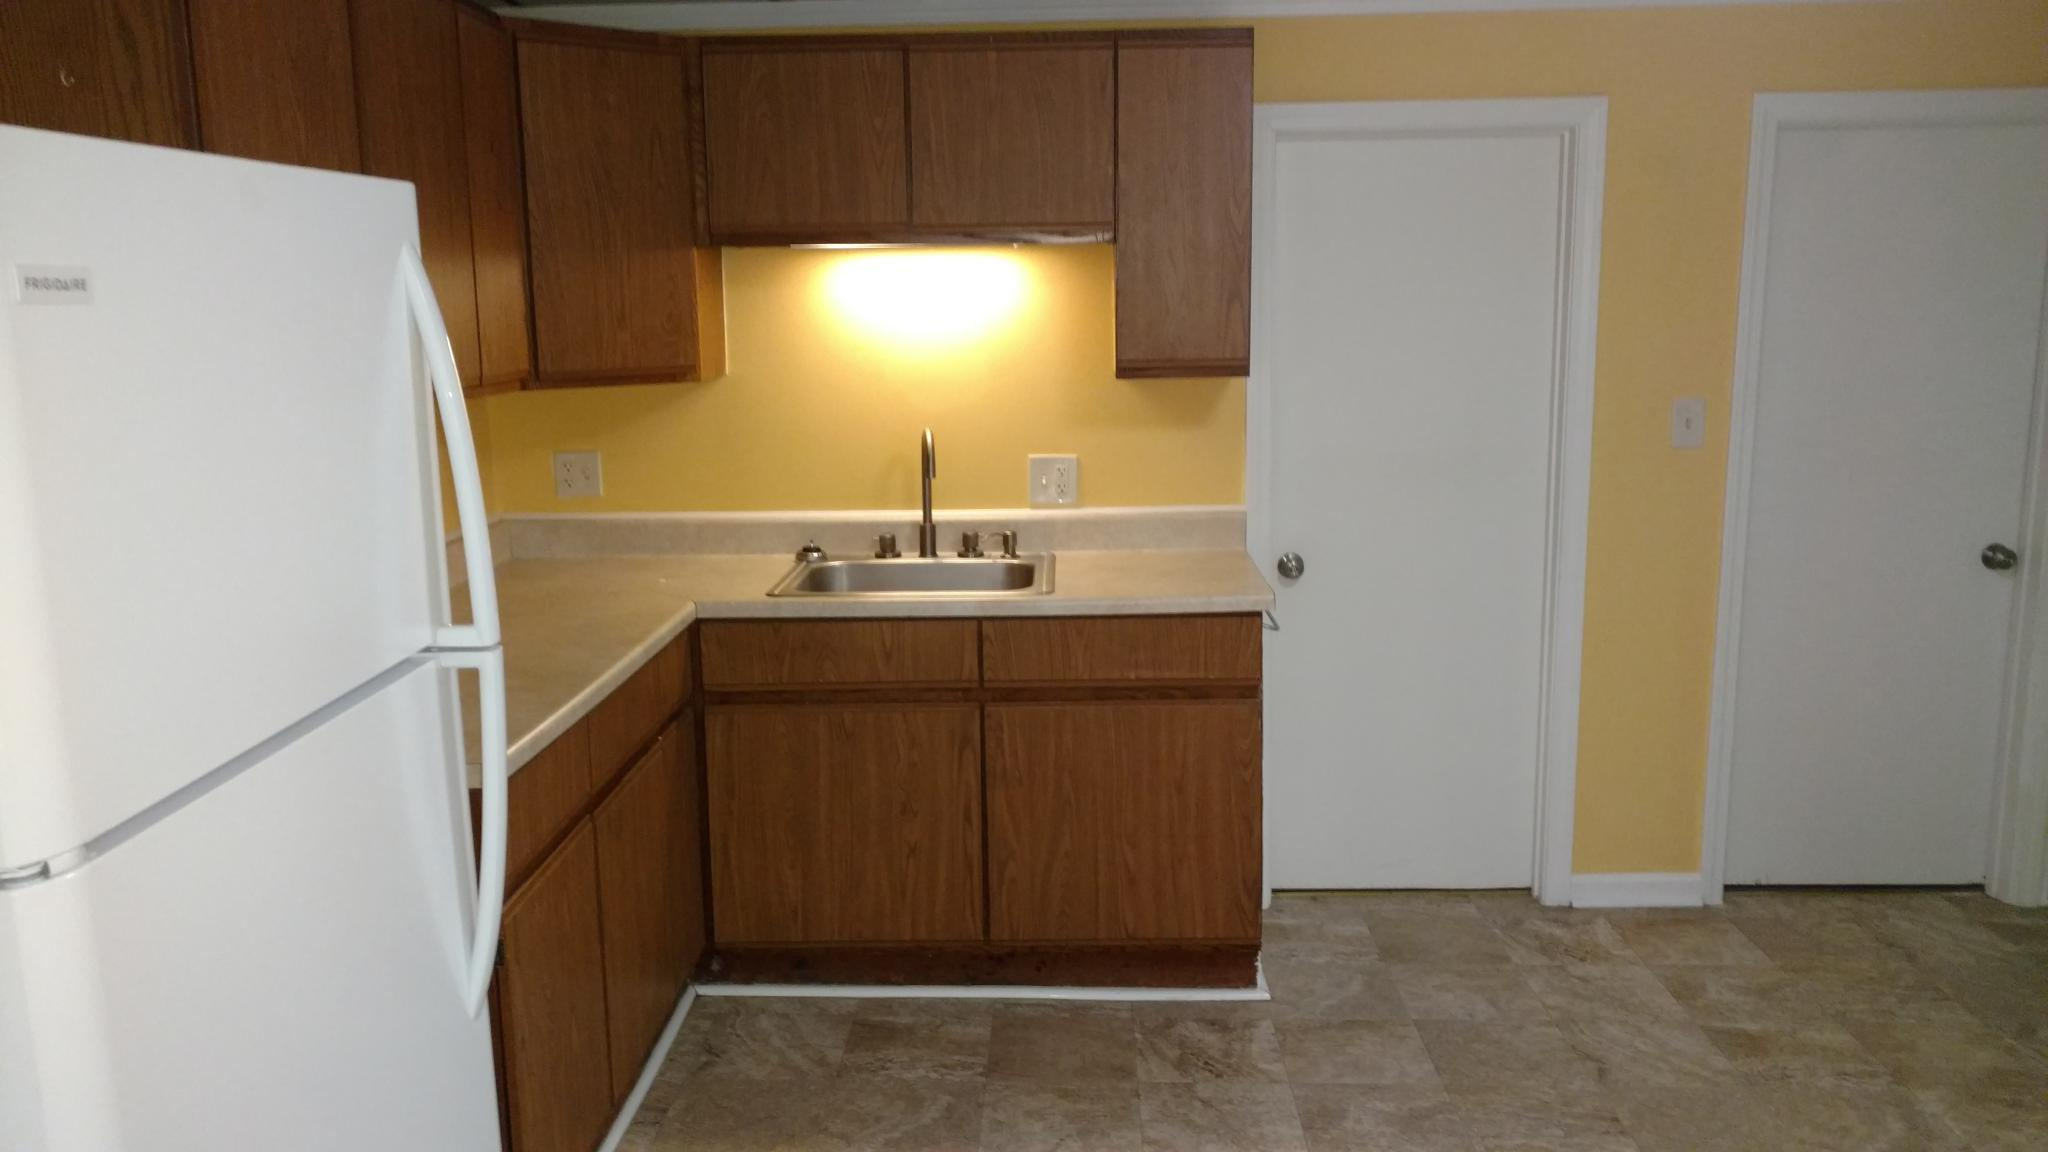 90 Canterbury St #1, Worcester, MA 01603 For Rent | Trulia